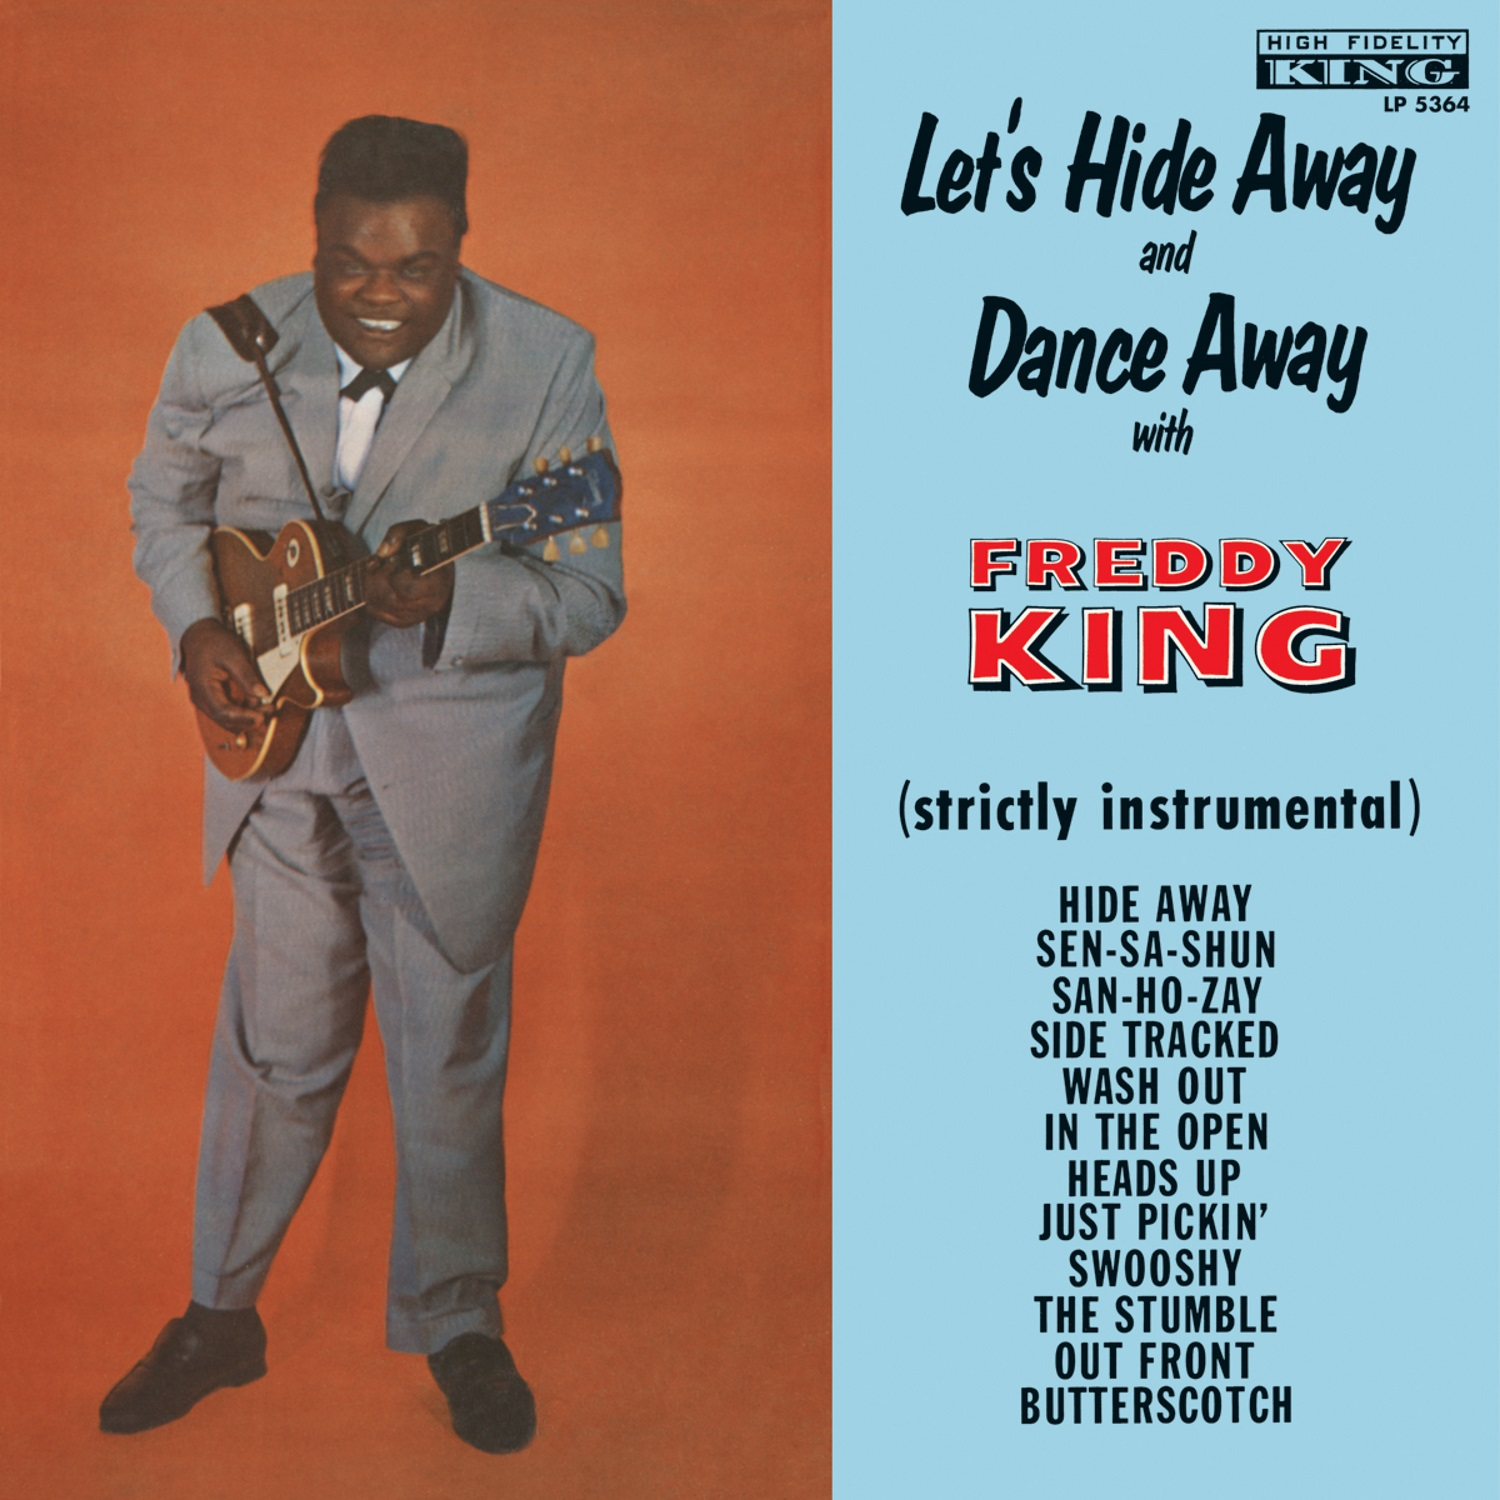 King, Freddy (Freddie) - Let's Hide Away and Dance Away with Freddy King - LP - COLORED VINYL